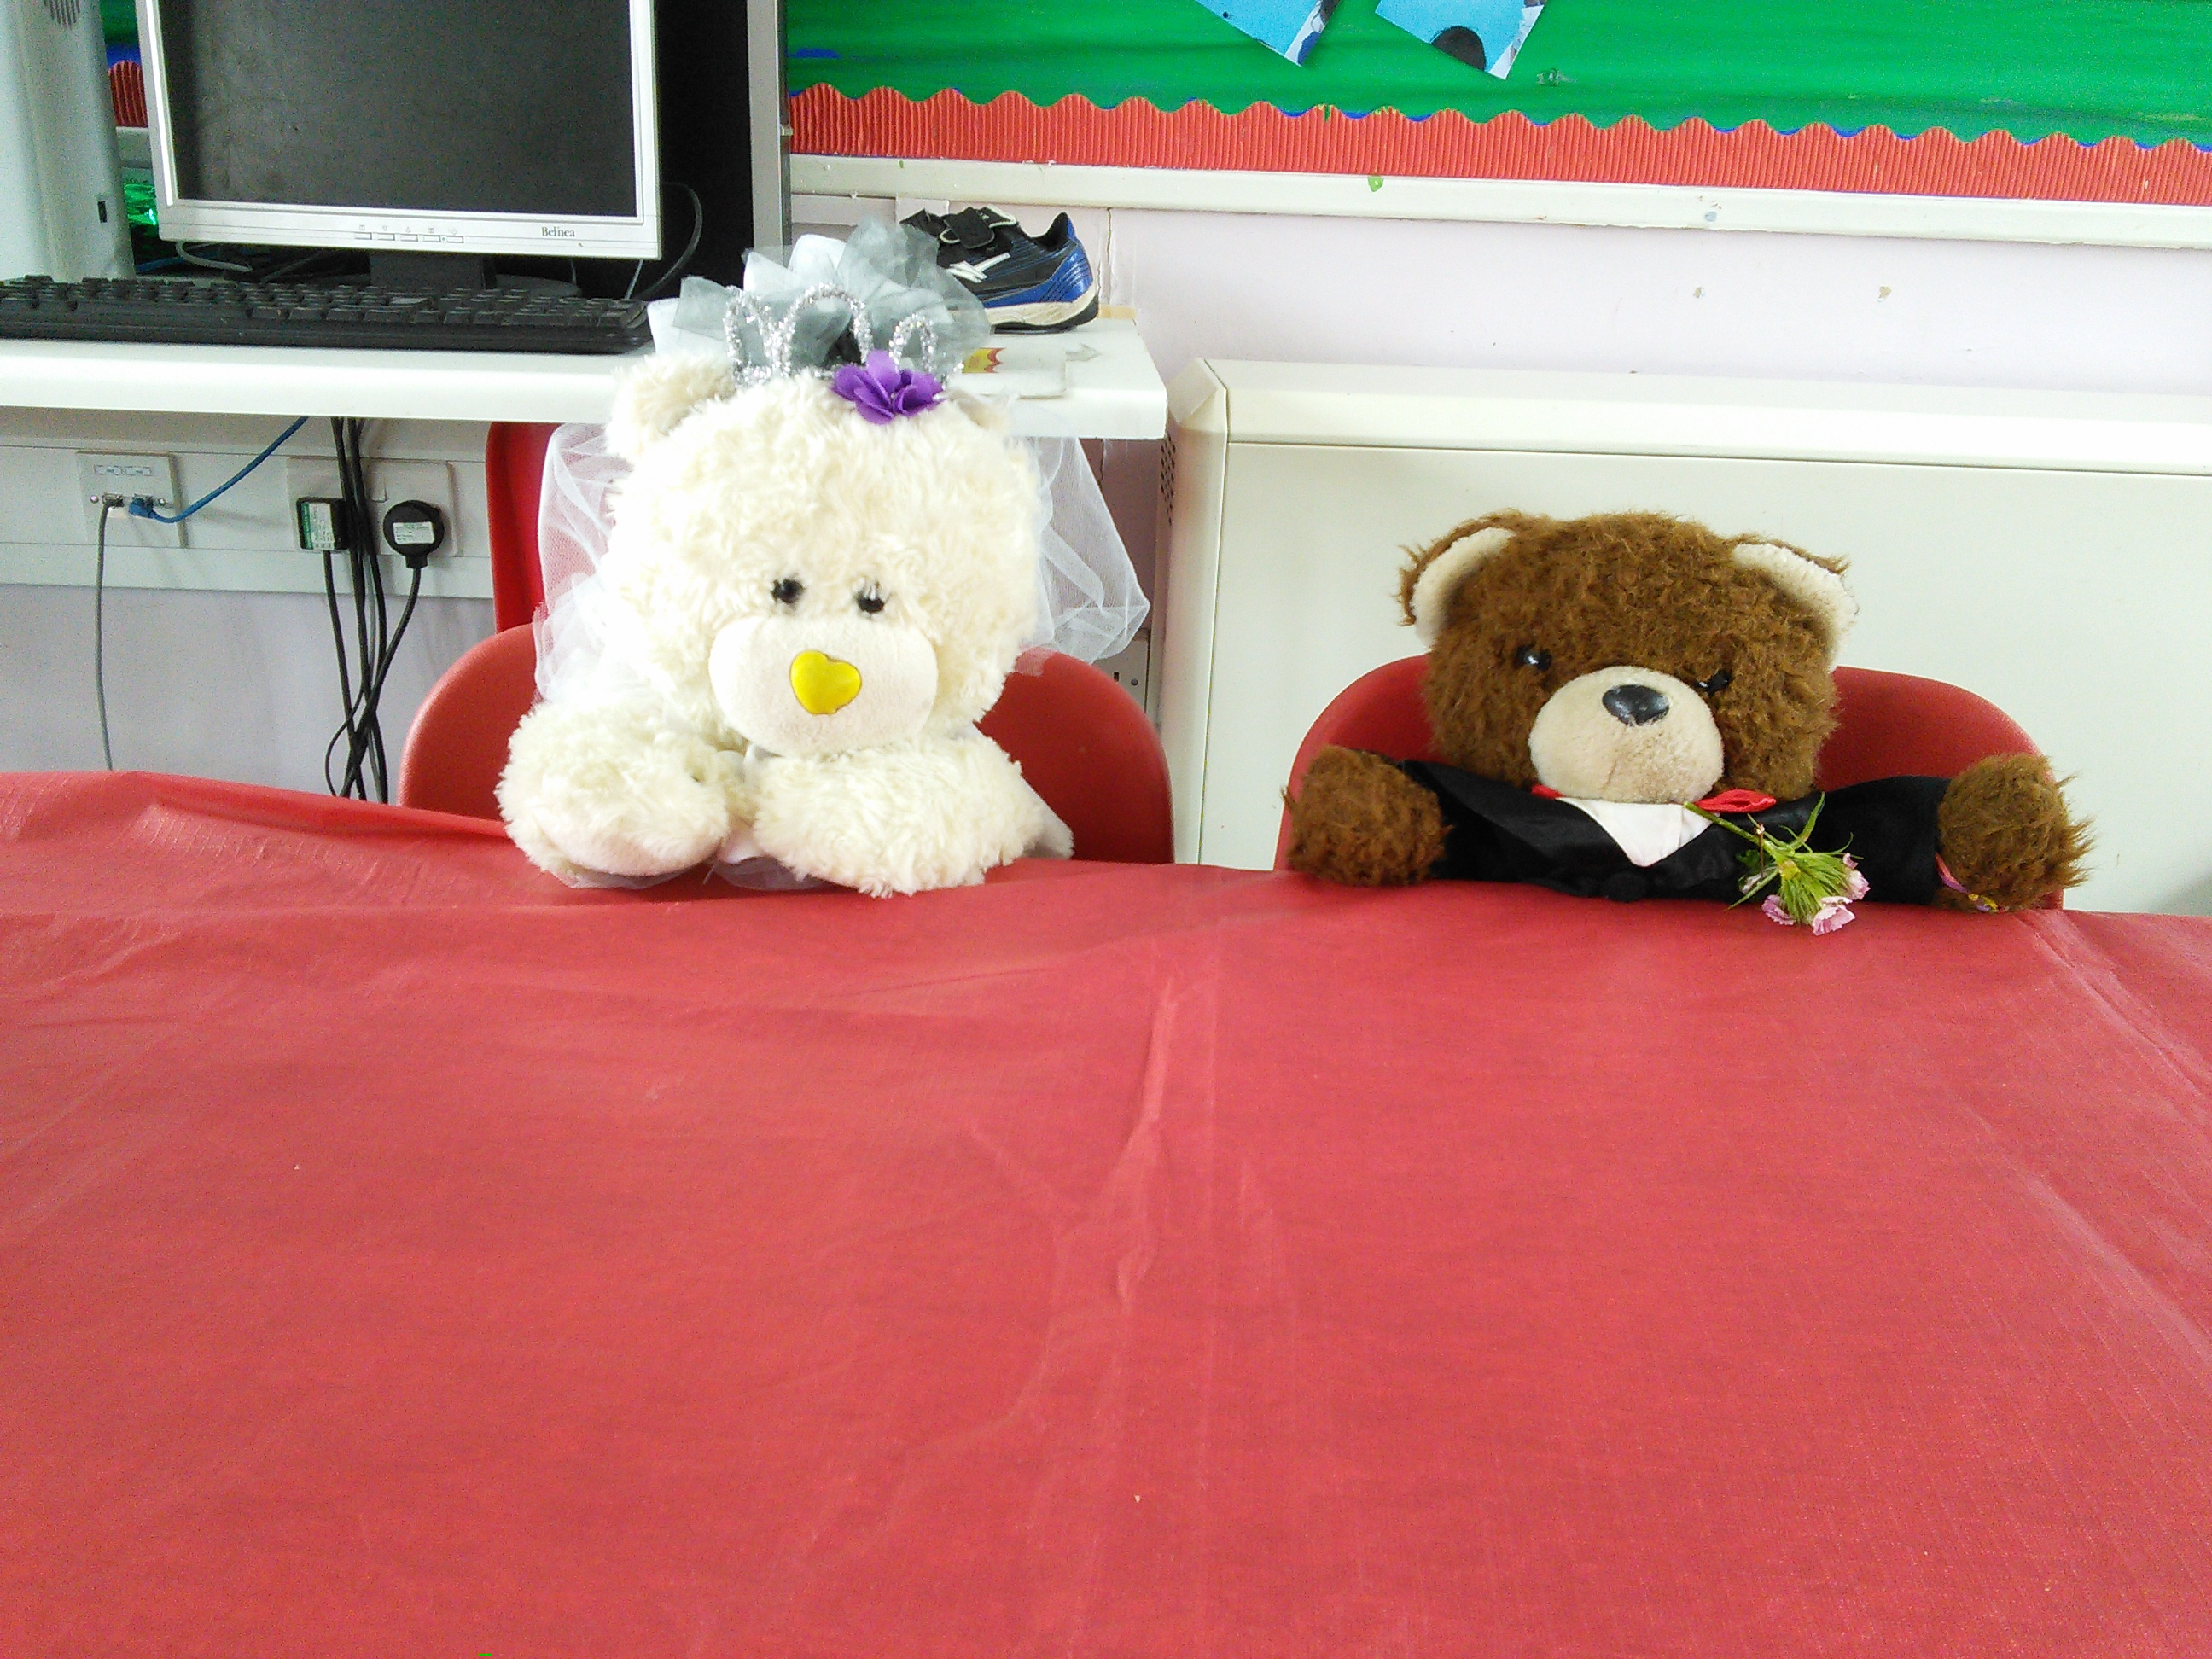 Teaching KS1 (Infant) children about marriage. We think marriage is so good that we would love to celebrate it with bears of any kind.